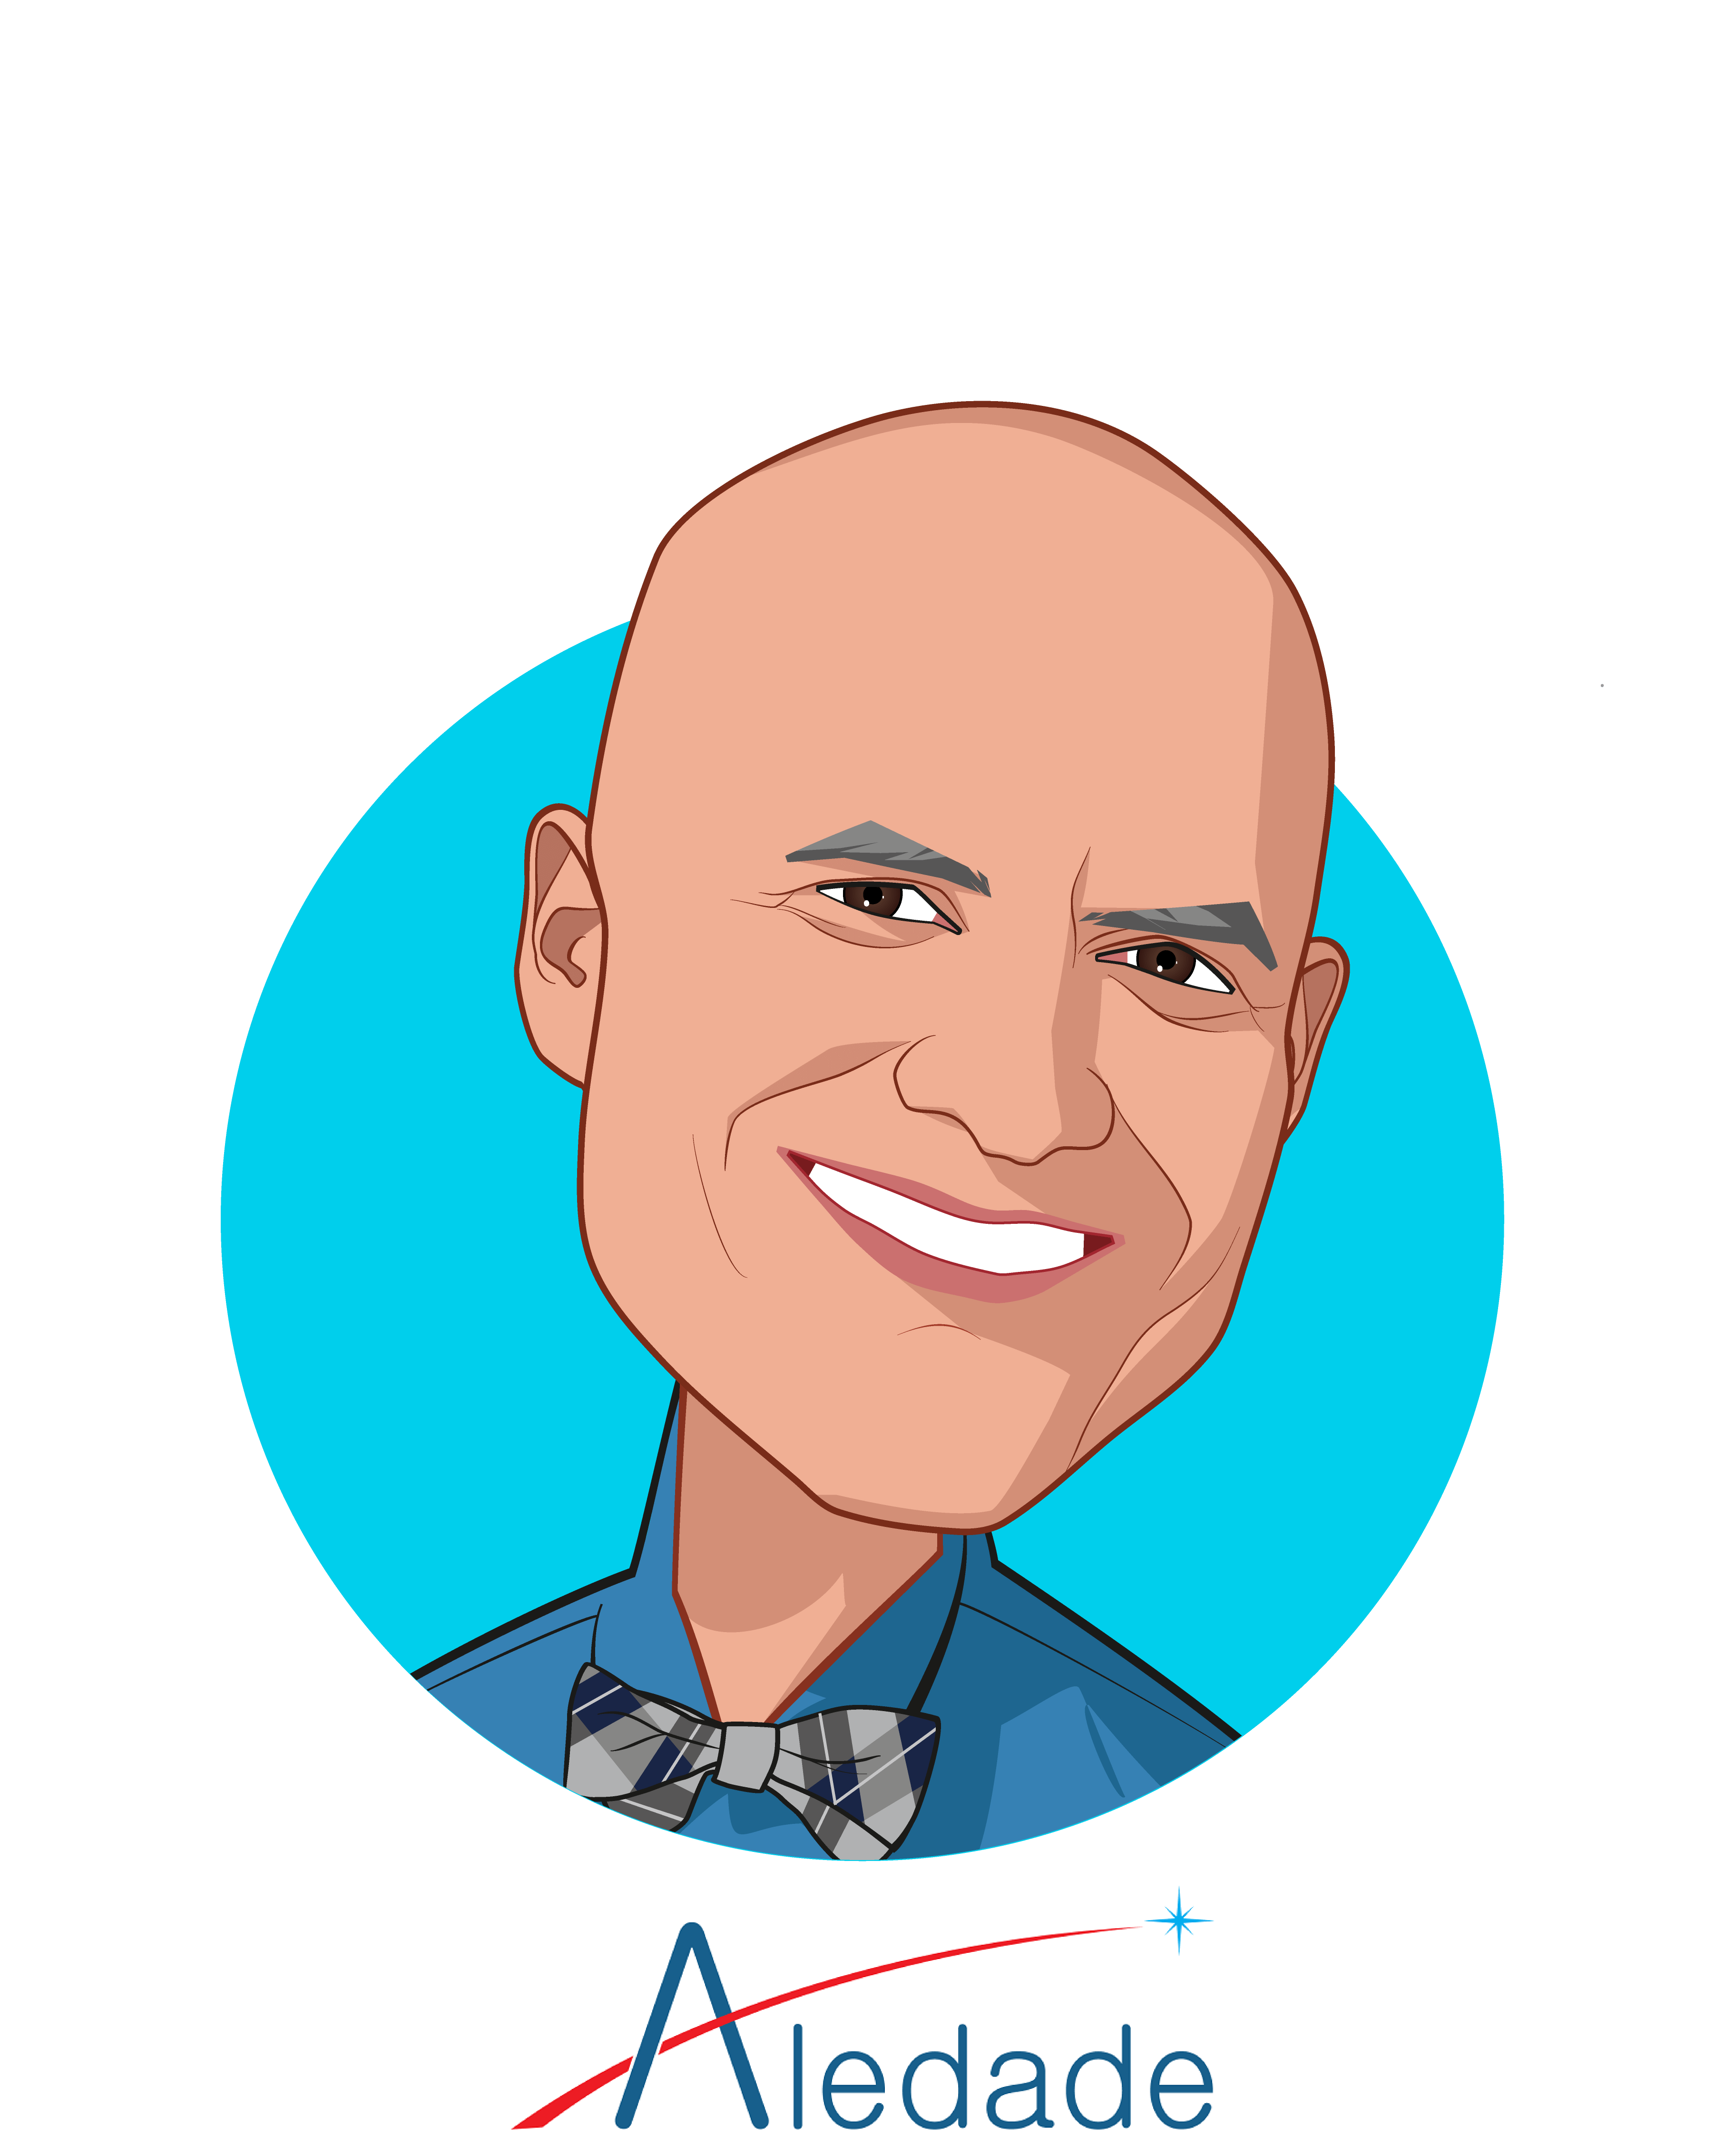 Main caricature of Farzad Mostashari, MD, who is speaking at HLTH and is Founder and CEO at Aledade, Inc.